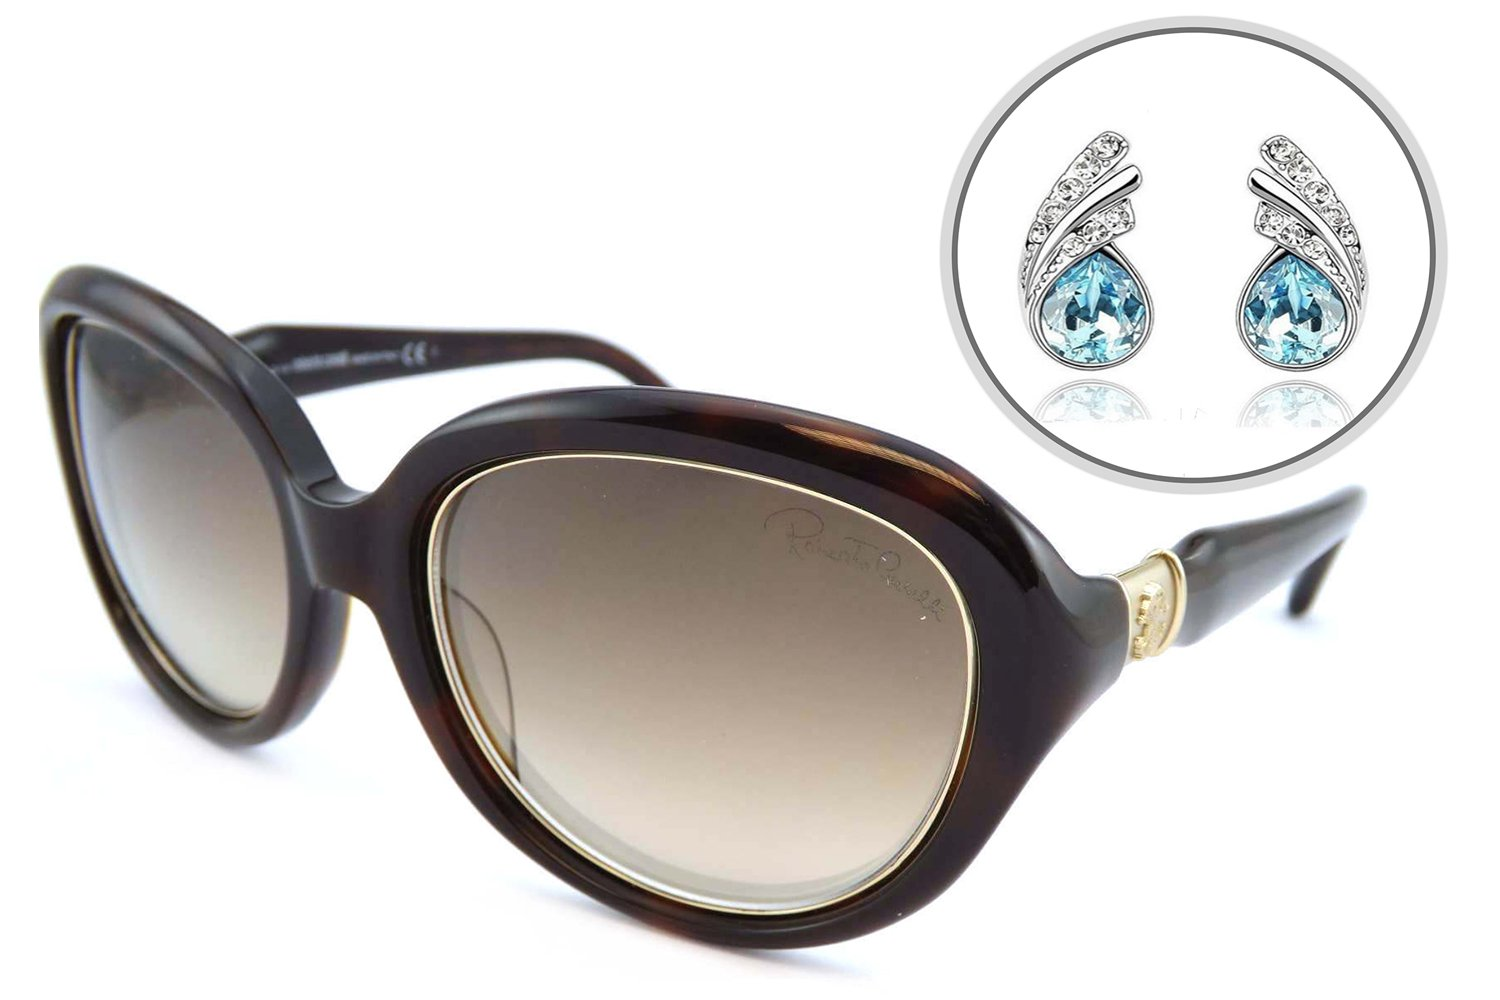 Roberto Cavalli AUTHENTIC Oval Womens Sunglasses with Free Silver Plated  Earrings - Scratch Resistant Mirrored Lens, Full Rim - 100% UV Protection  56mm ... bf369ef8d9